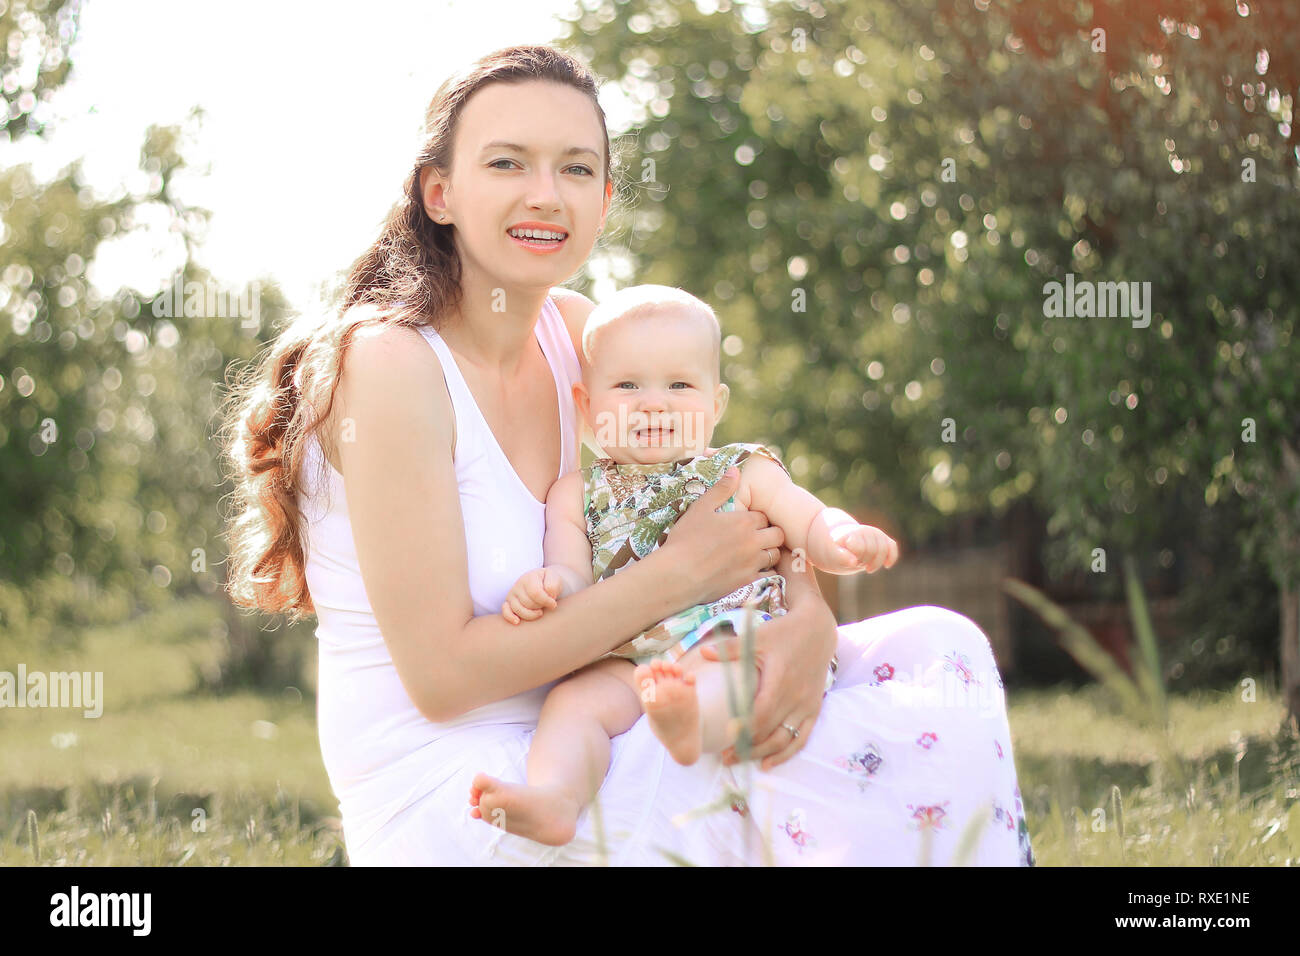 mom and baby.the concept of a happy motherhood.photo with copy space - Stock Image